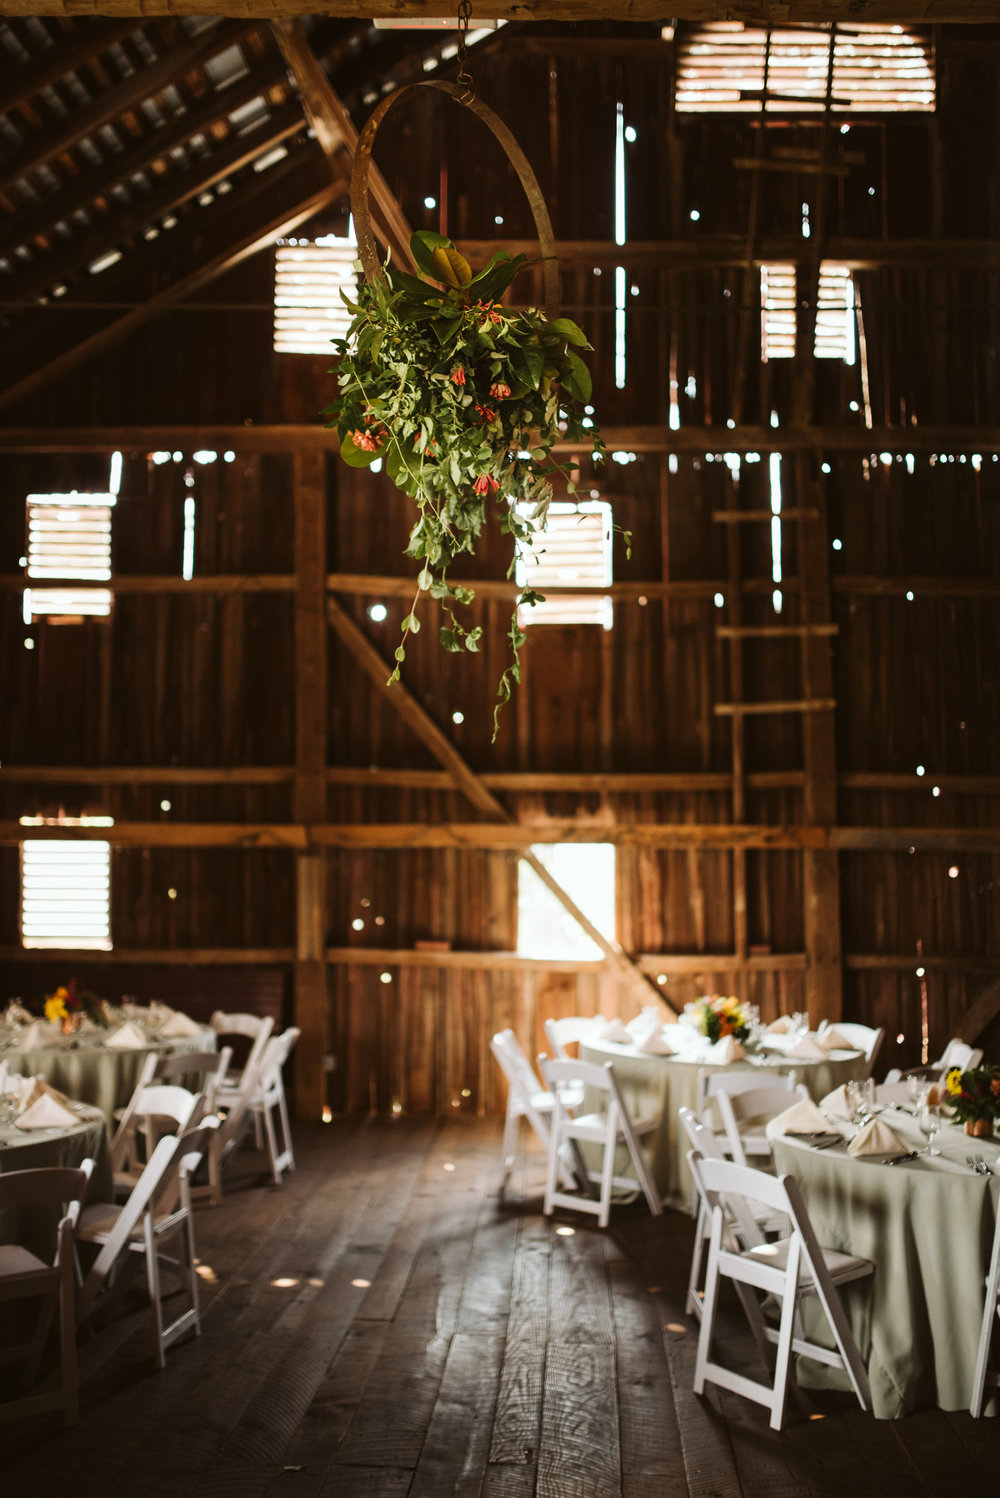 Rocklands Farm, Maryland, Intimate Wedding, Baltimore Wedding Photographer, Sungold Flower Co, Rustic, Romantic, Barn Wedding,  Hanging Floral Arrangement